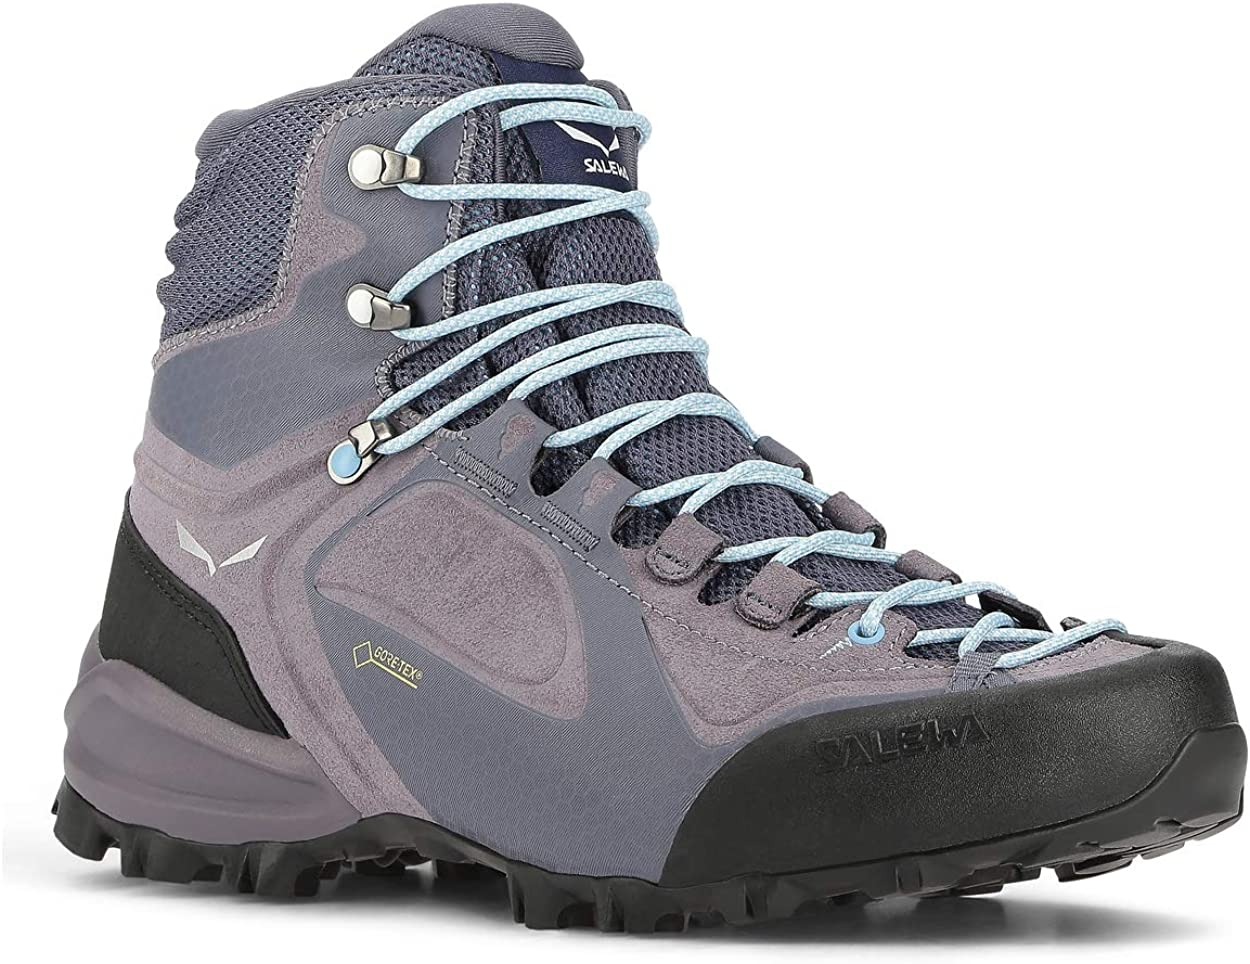 Salewa Alpenviolet Mid GTX Hiking Boot Womens